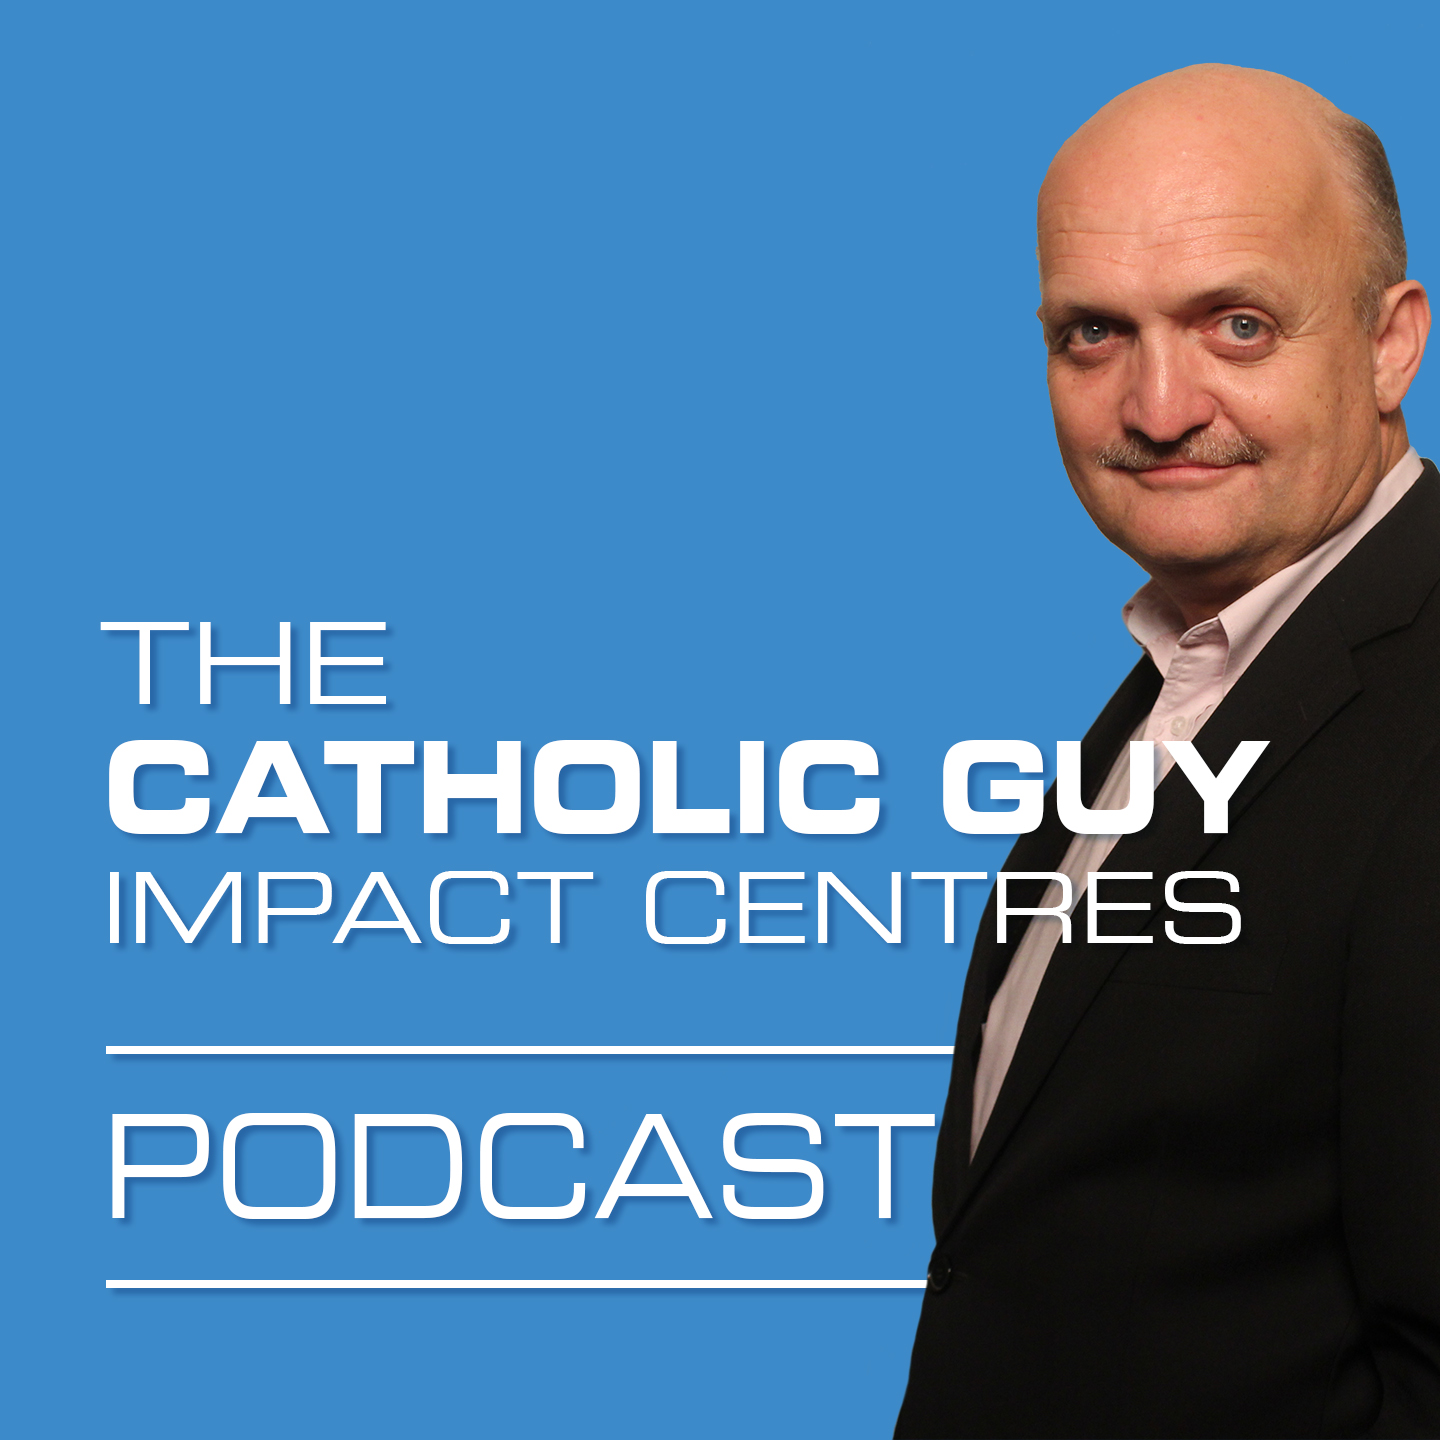 The Catholic Guy Impact Centres